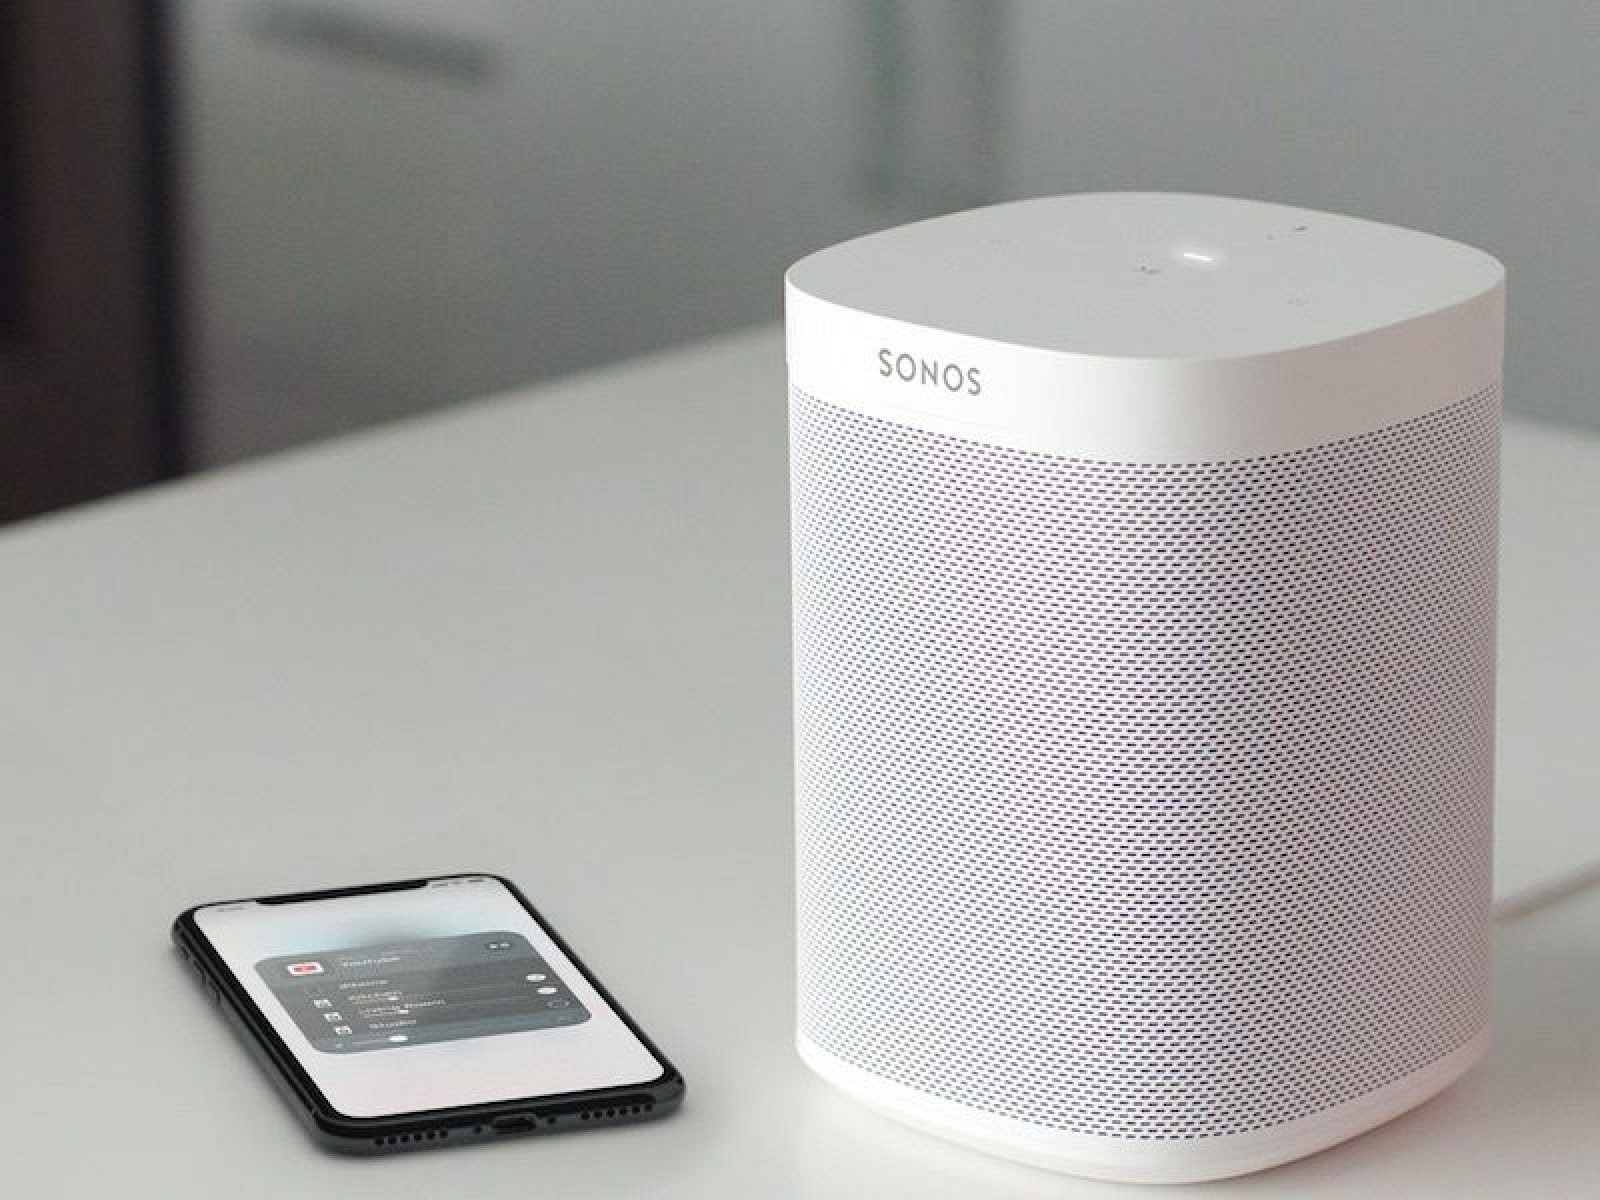 photo image Sonos Adds AirPlay 2 Support to Latest Speakers, Enabling Siri Control and Multi-Room Audio